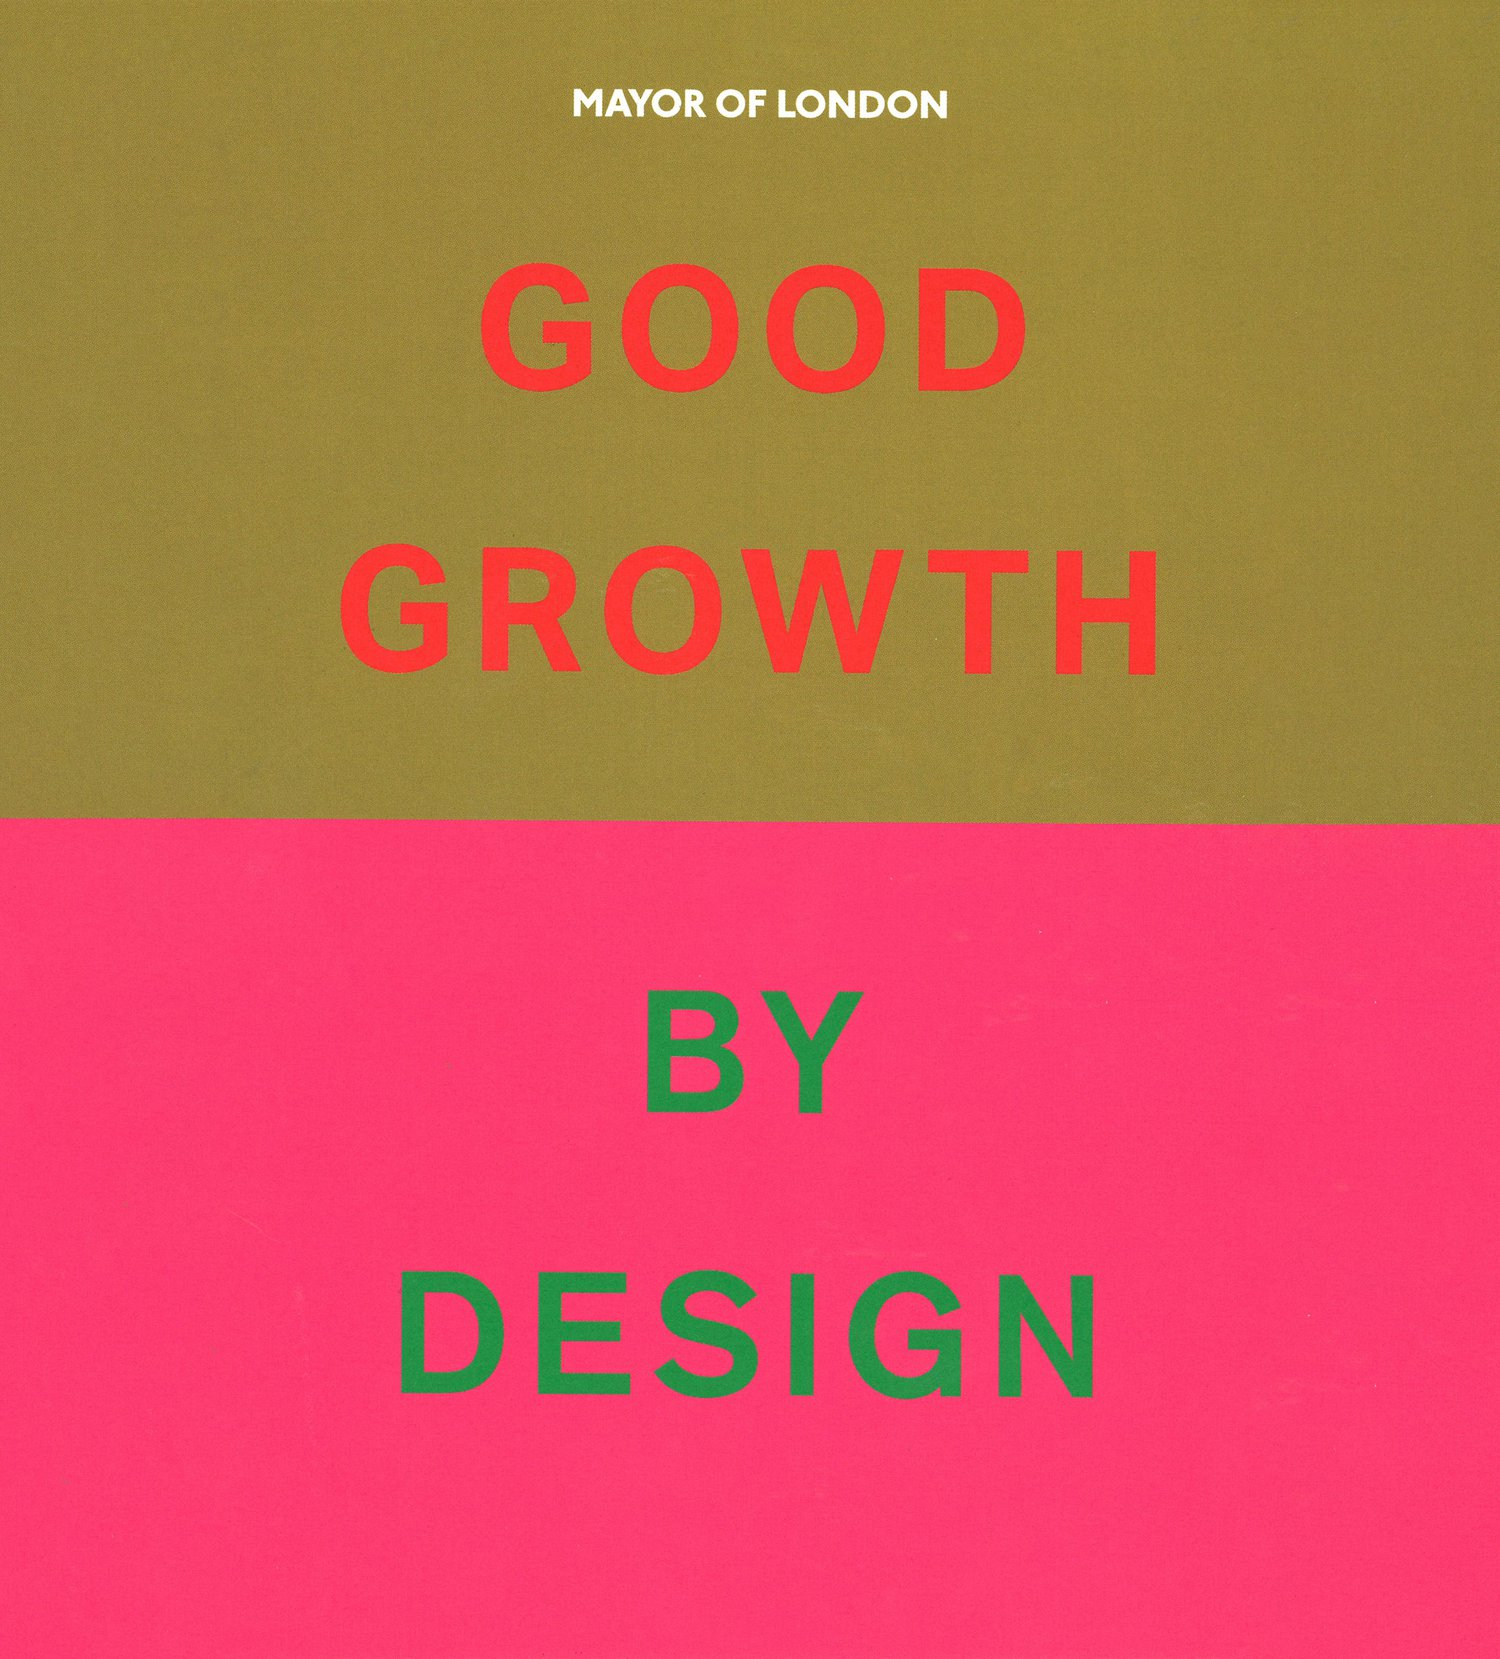 AKA_001_GoodGrowth_01.jpg